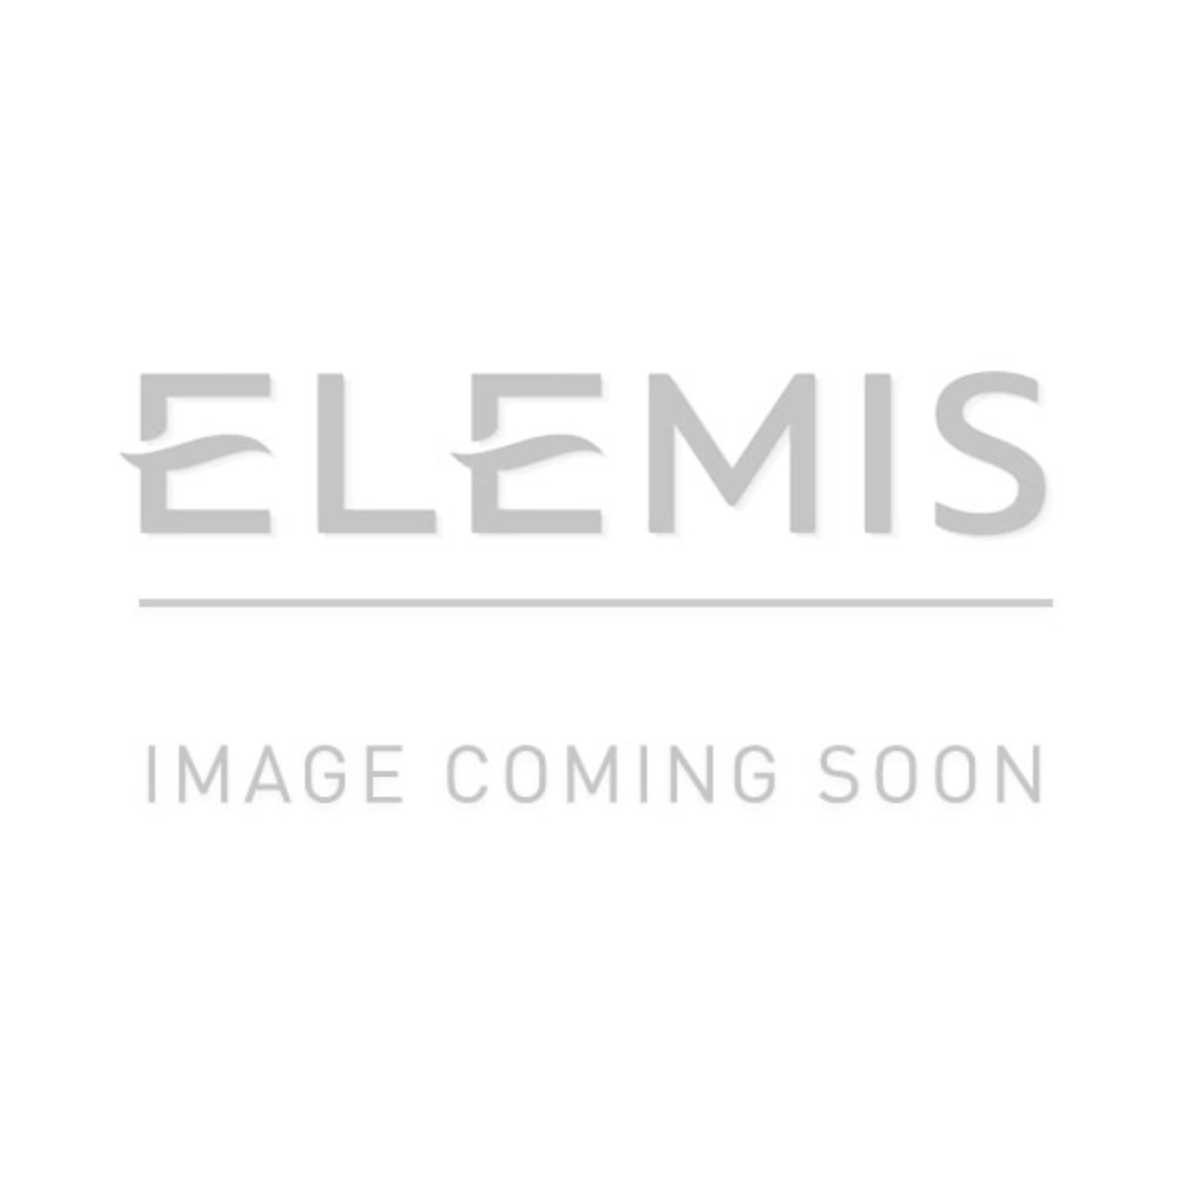 ELEMIS Peptide4 Night Recovery Cream-Oil Blue Bottle